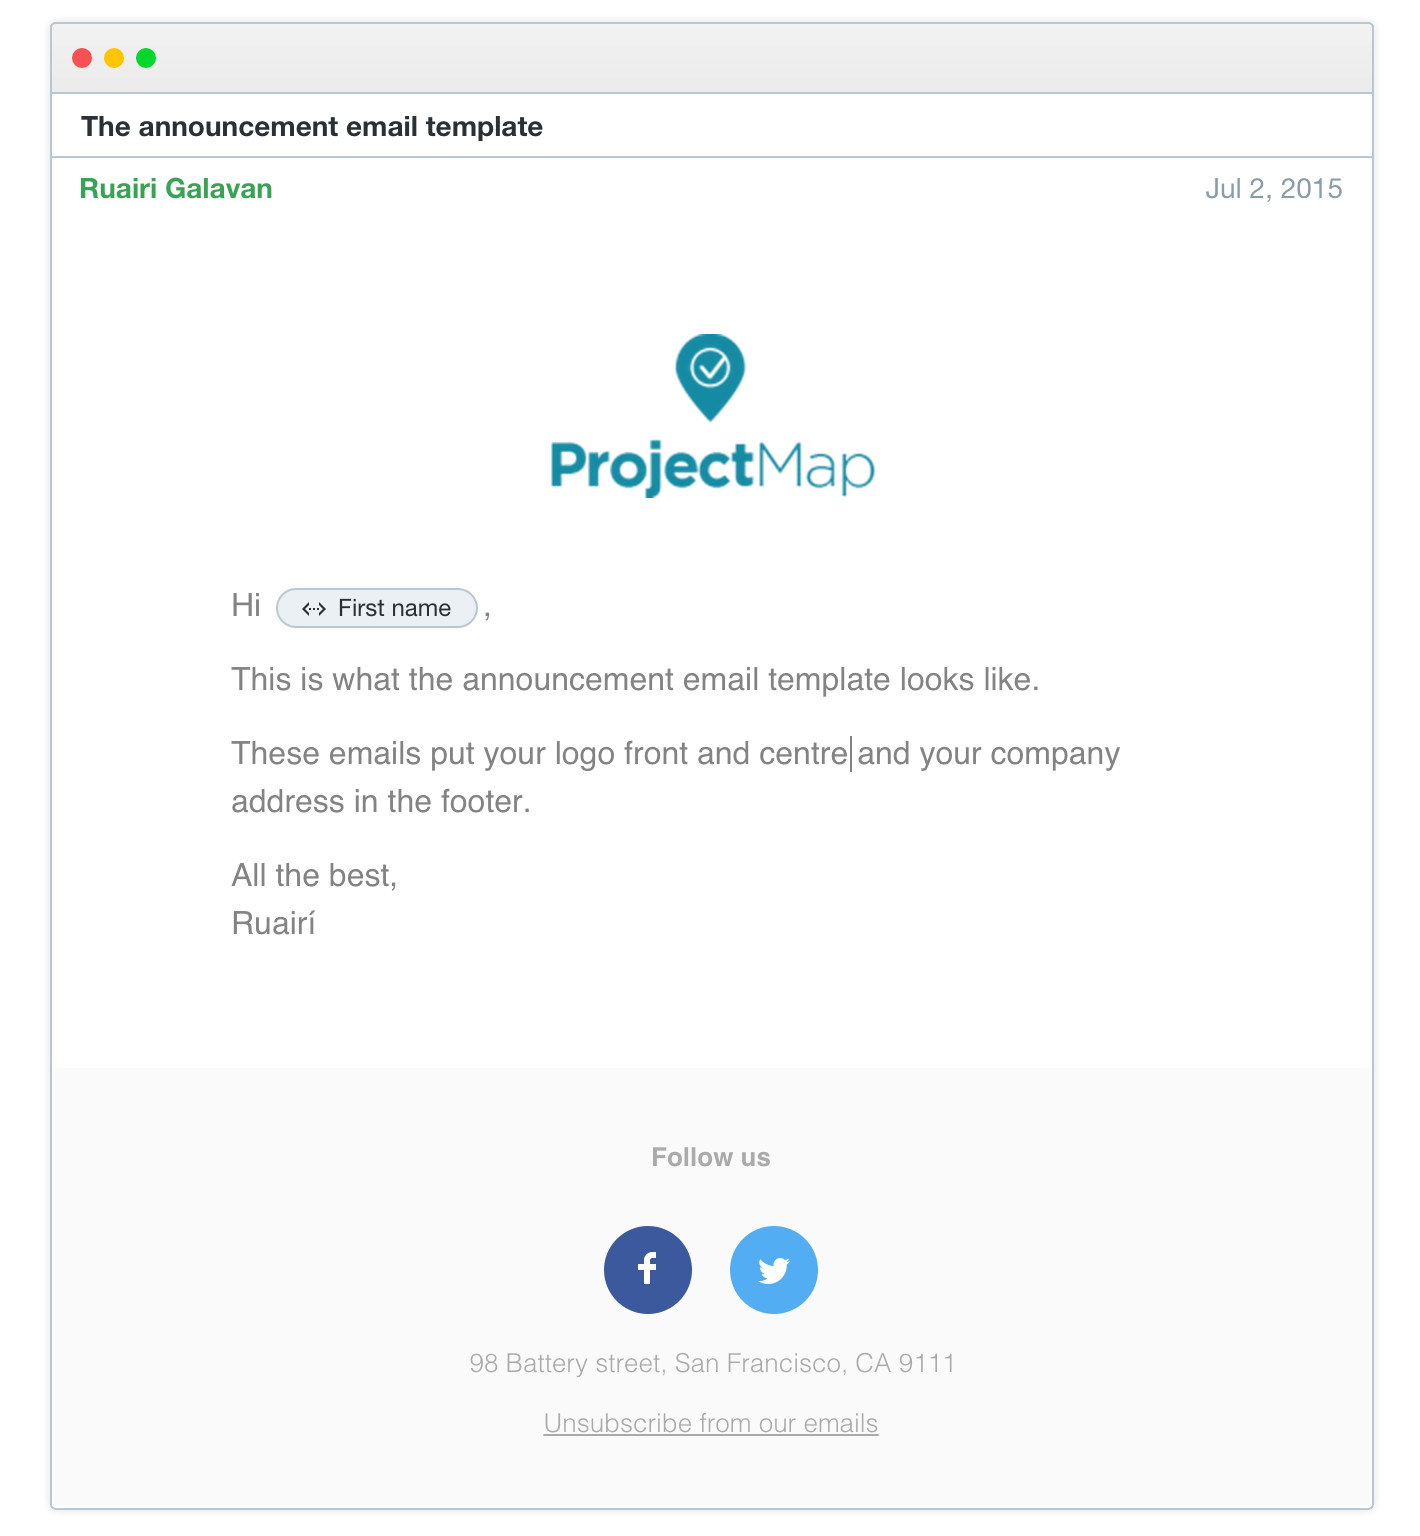 4 email templates to choose from